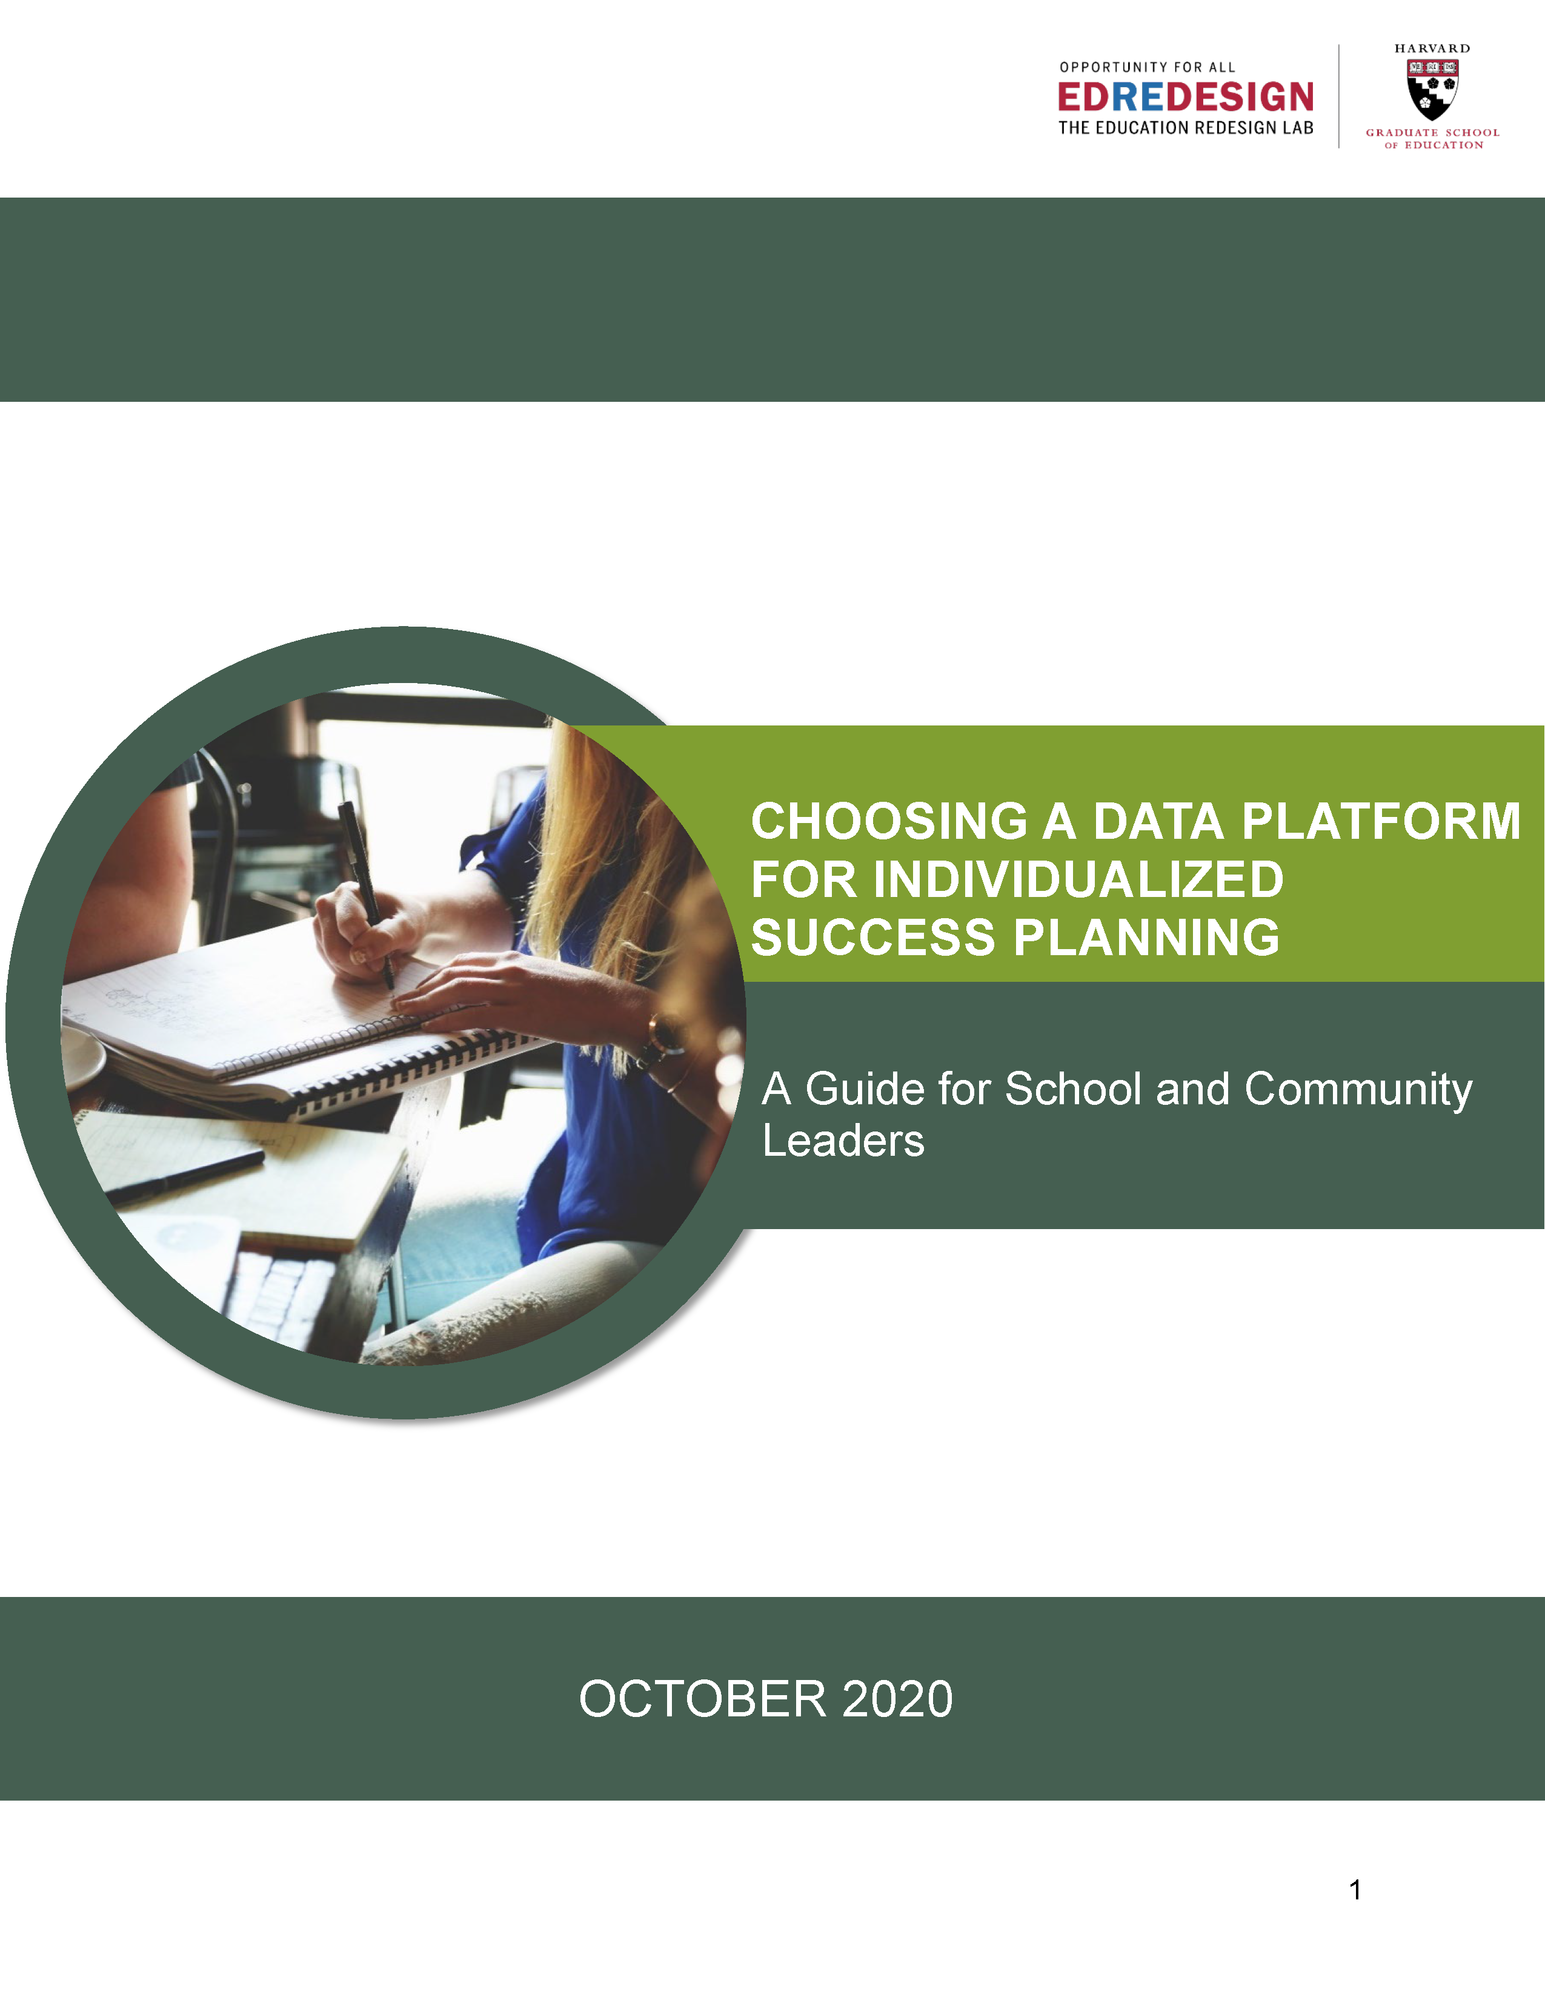 Success Planning Data Platform Guide